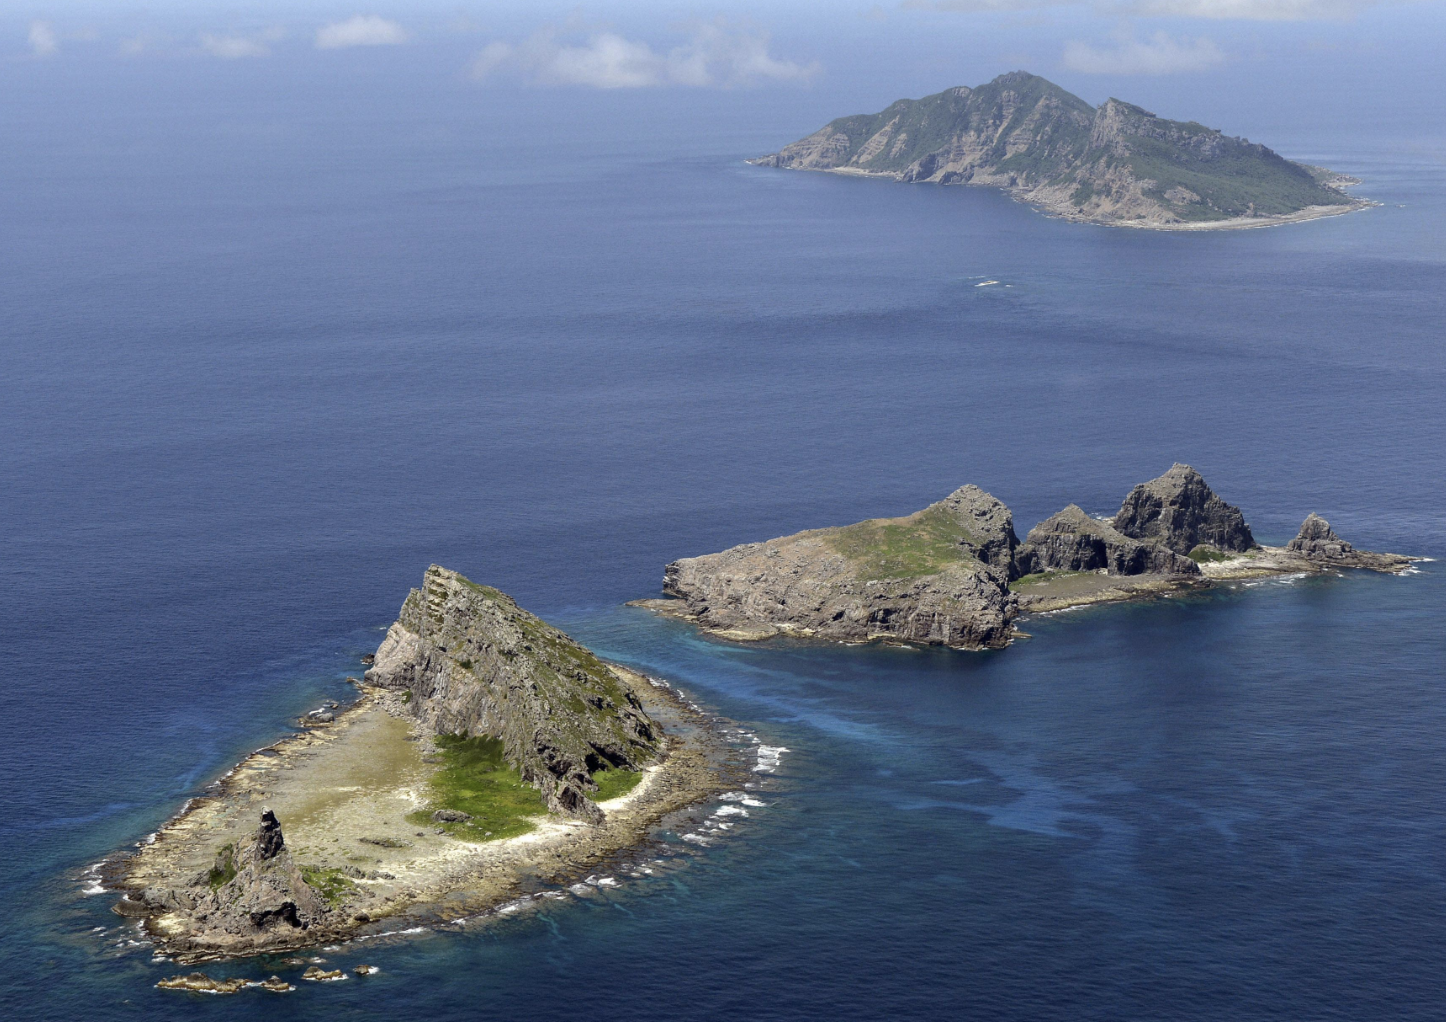 China Shifts Maritime Pressure To Japan And East China Sea With Record Intrusions This Year